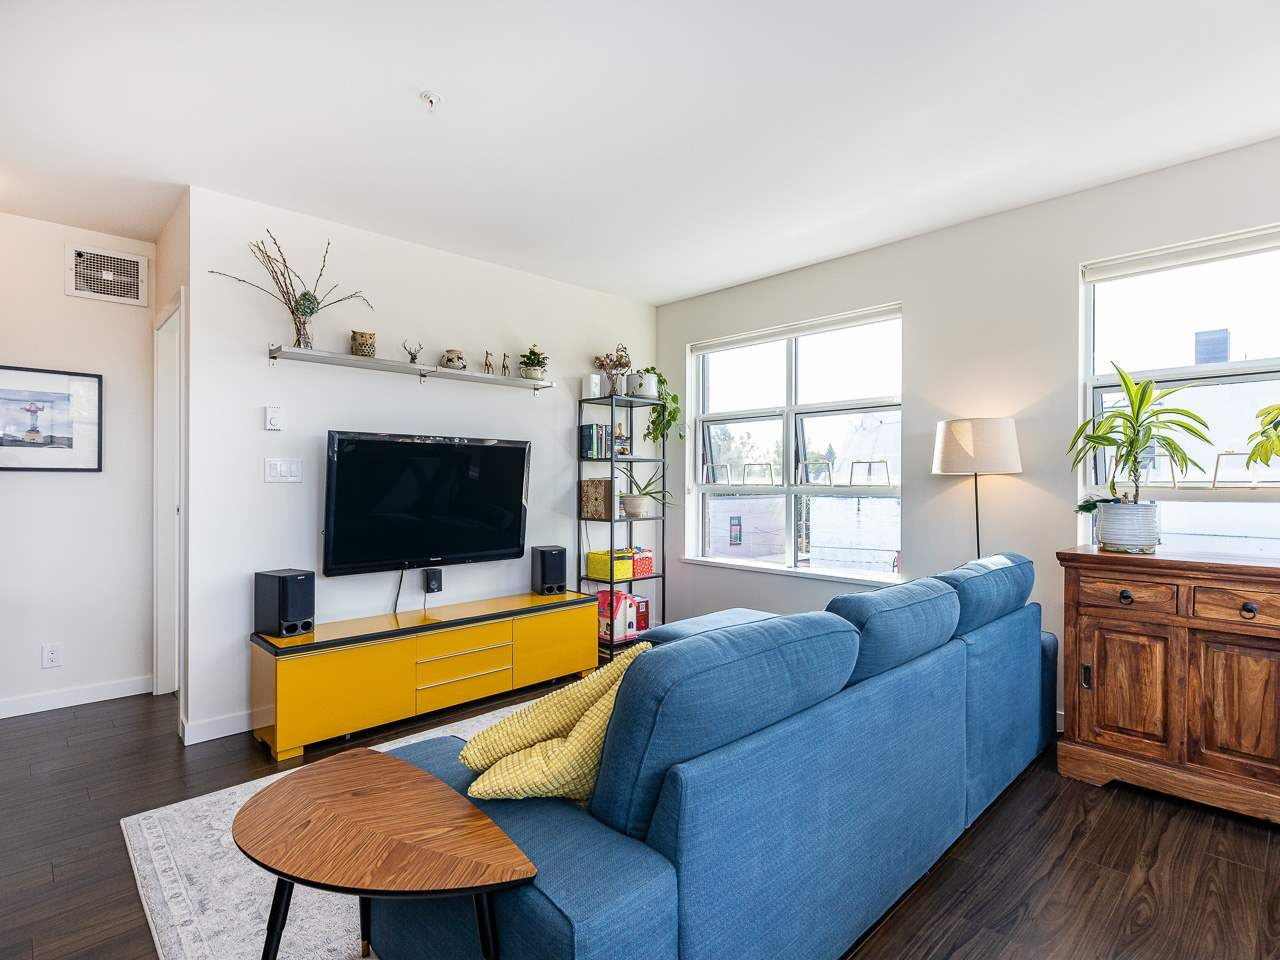 Photo 2: Photos: 306 202 E 24TH AVENUE in Vancouver: Main Condo for sale (Vancouver East)  : MLS®# R2406713